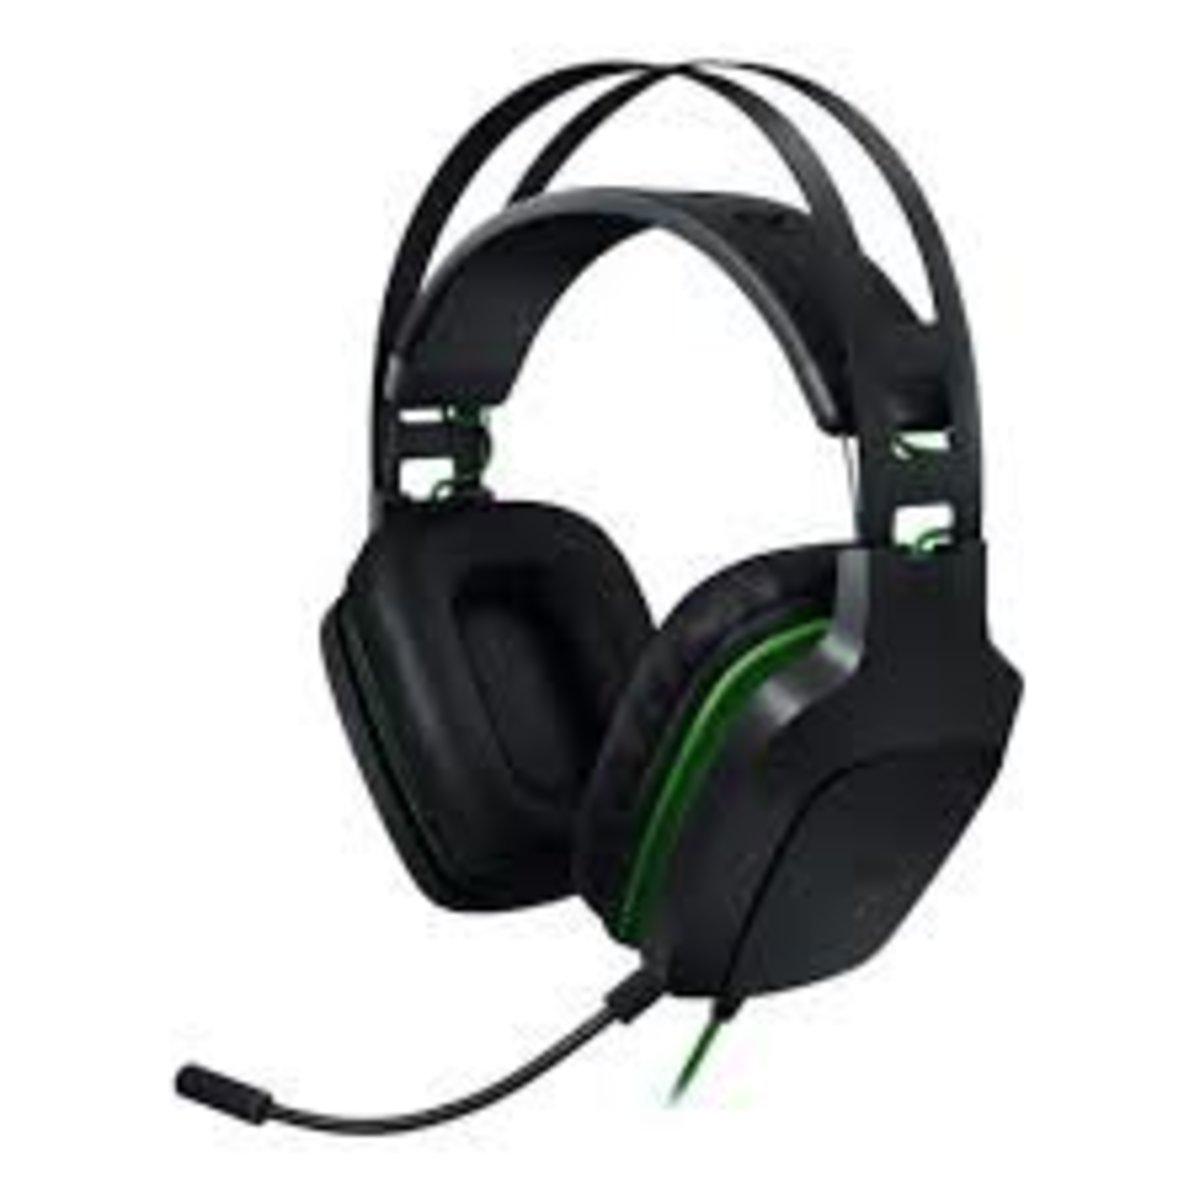 ELECTRA V2 USB Gaming Headset